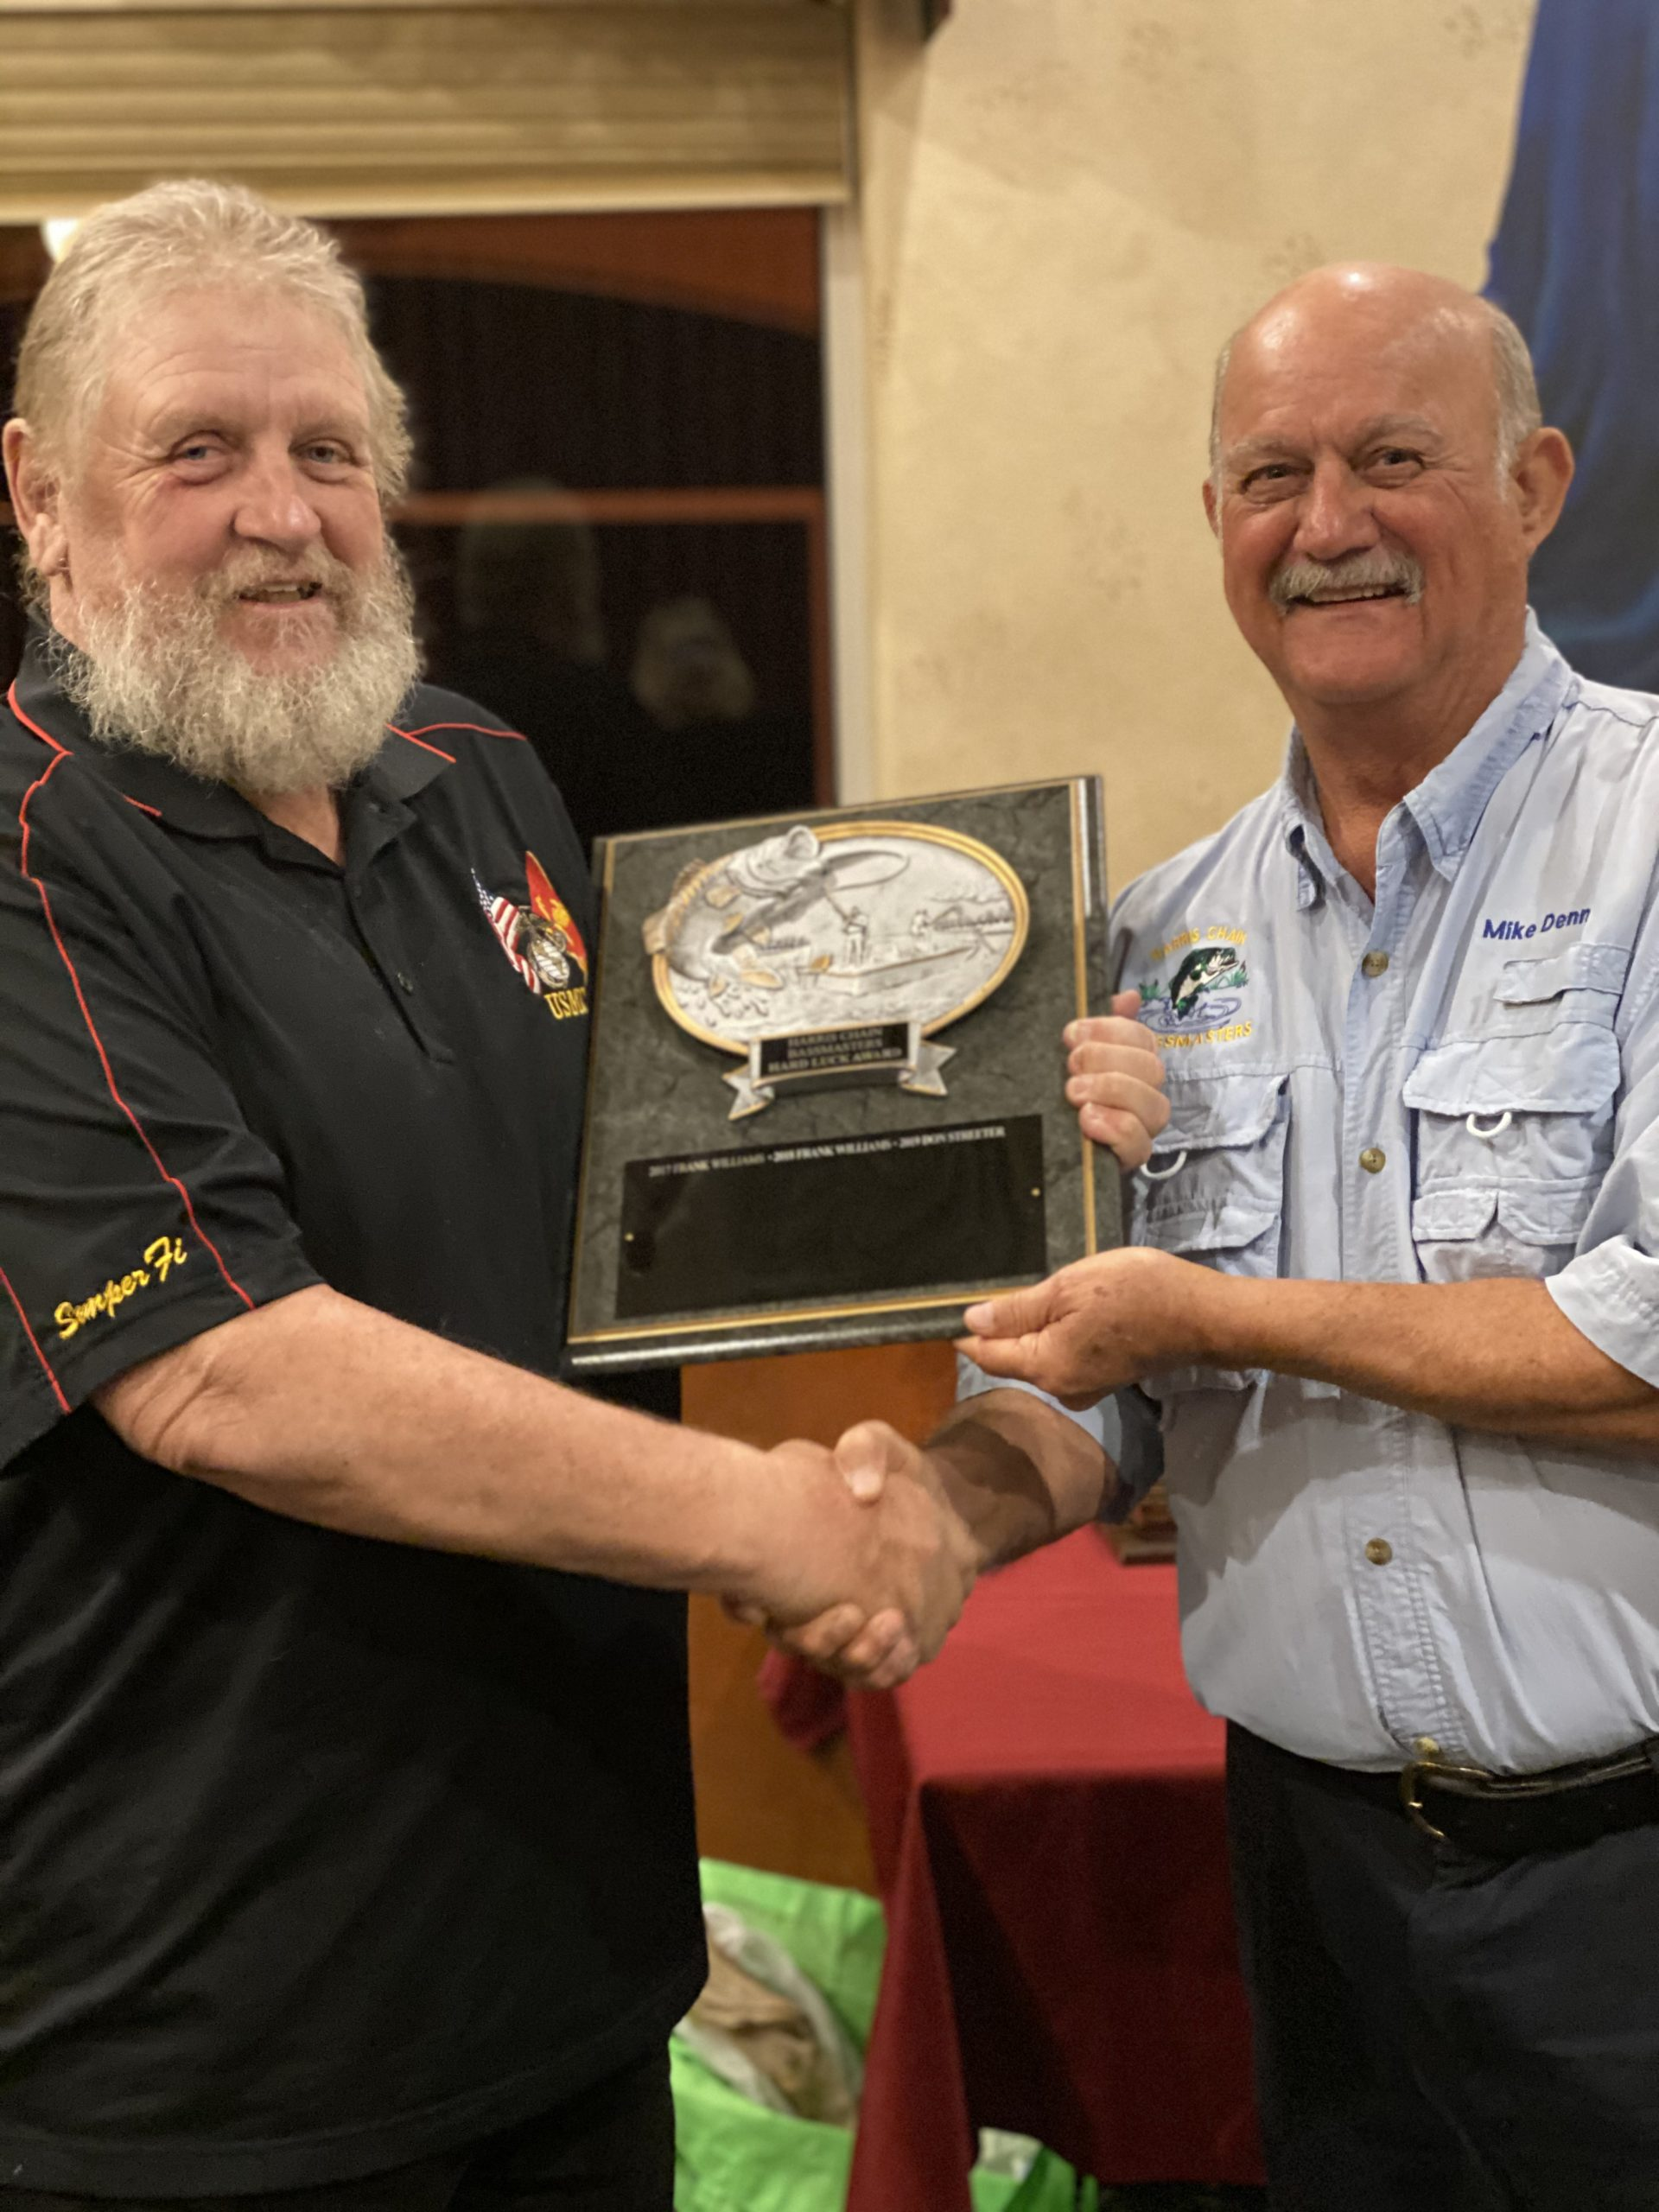 Don Streeter - 2019 Hard Luck Award